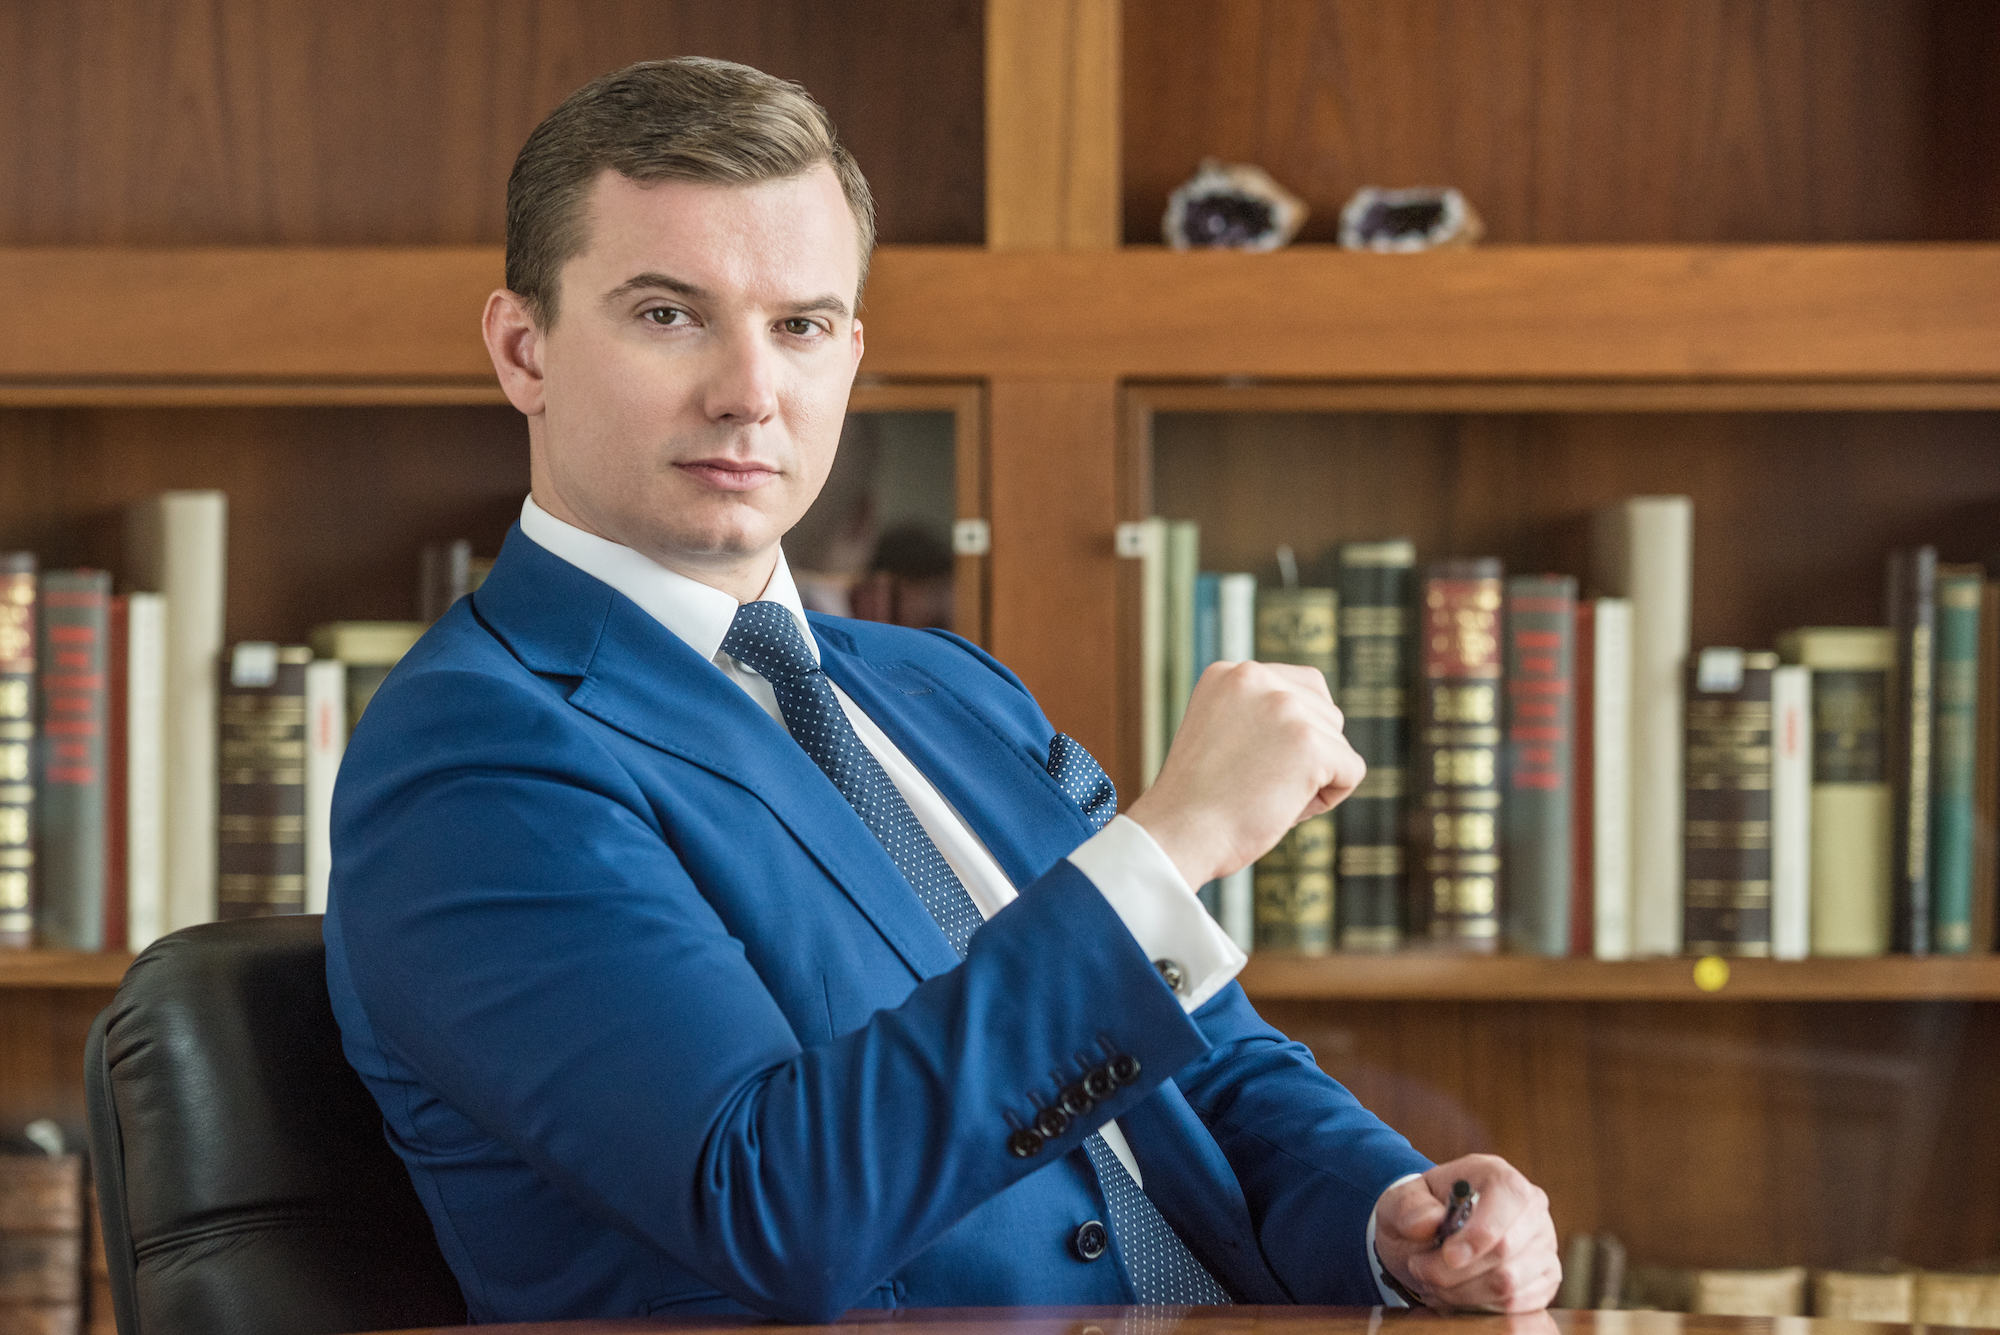 Krzysztof Rąpała appointed to the Supervisory Board of the Grupa Nokaut S.A.